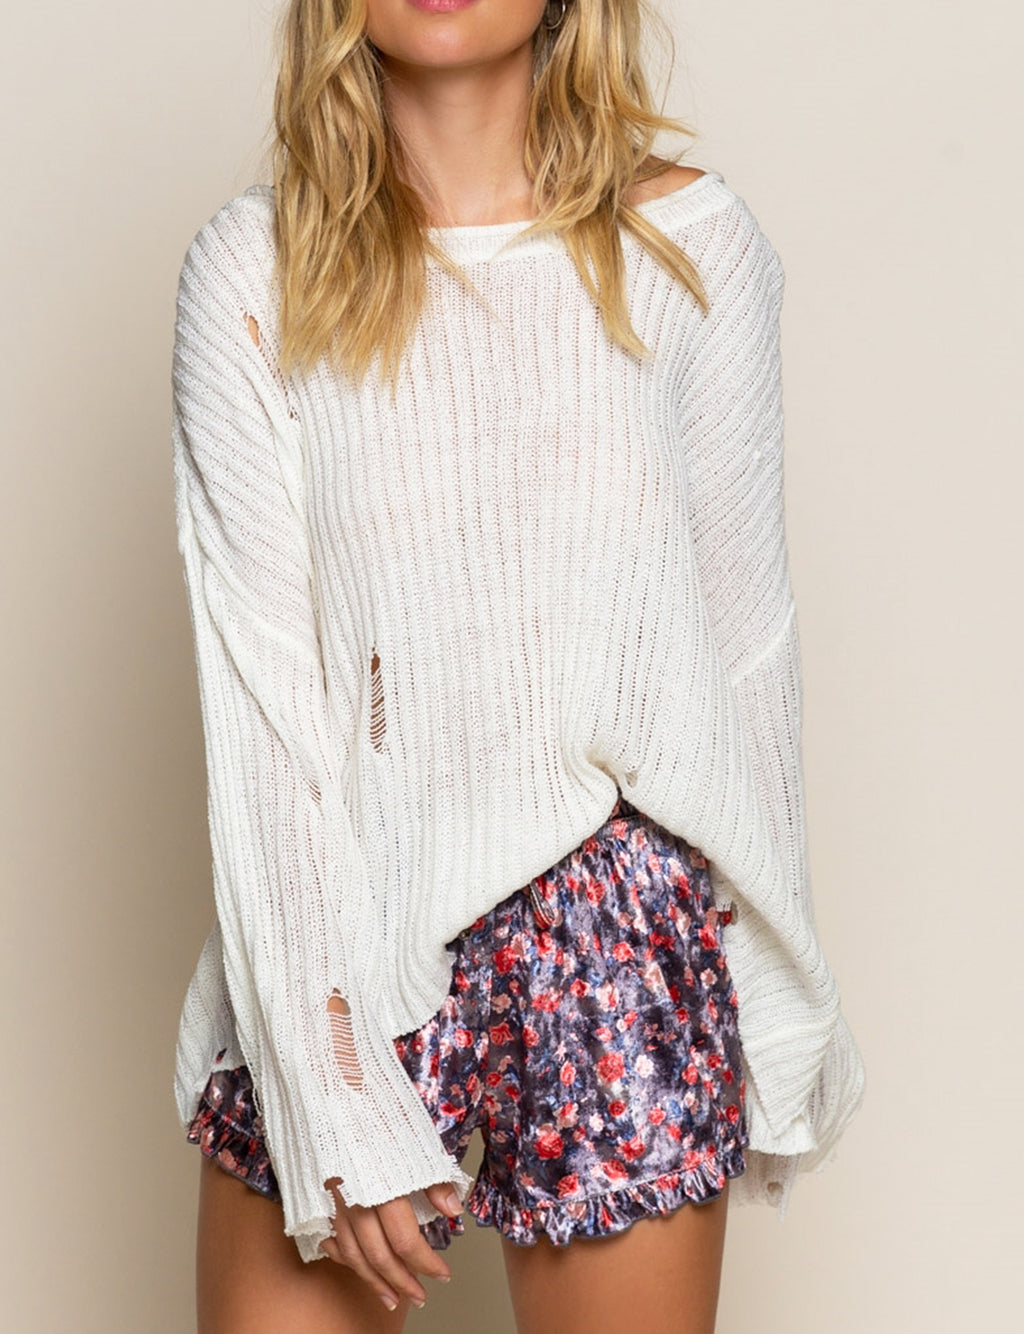 Pol Clothing Distressed Sweater in Cream